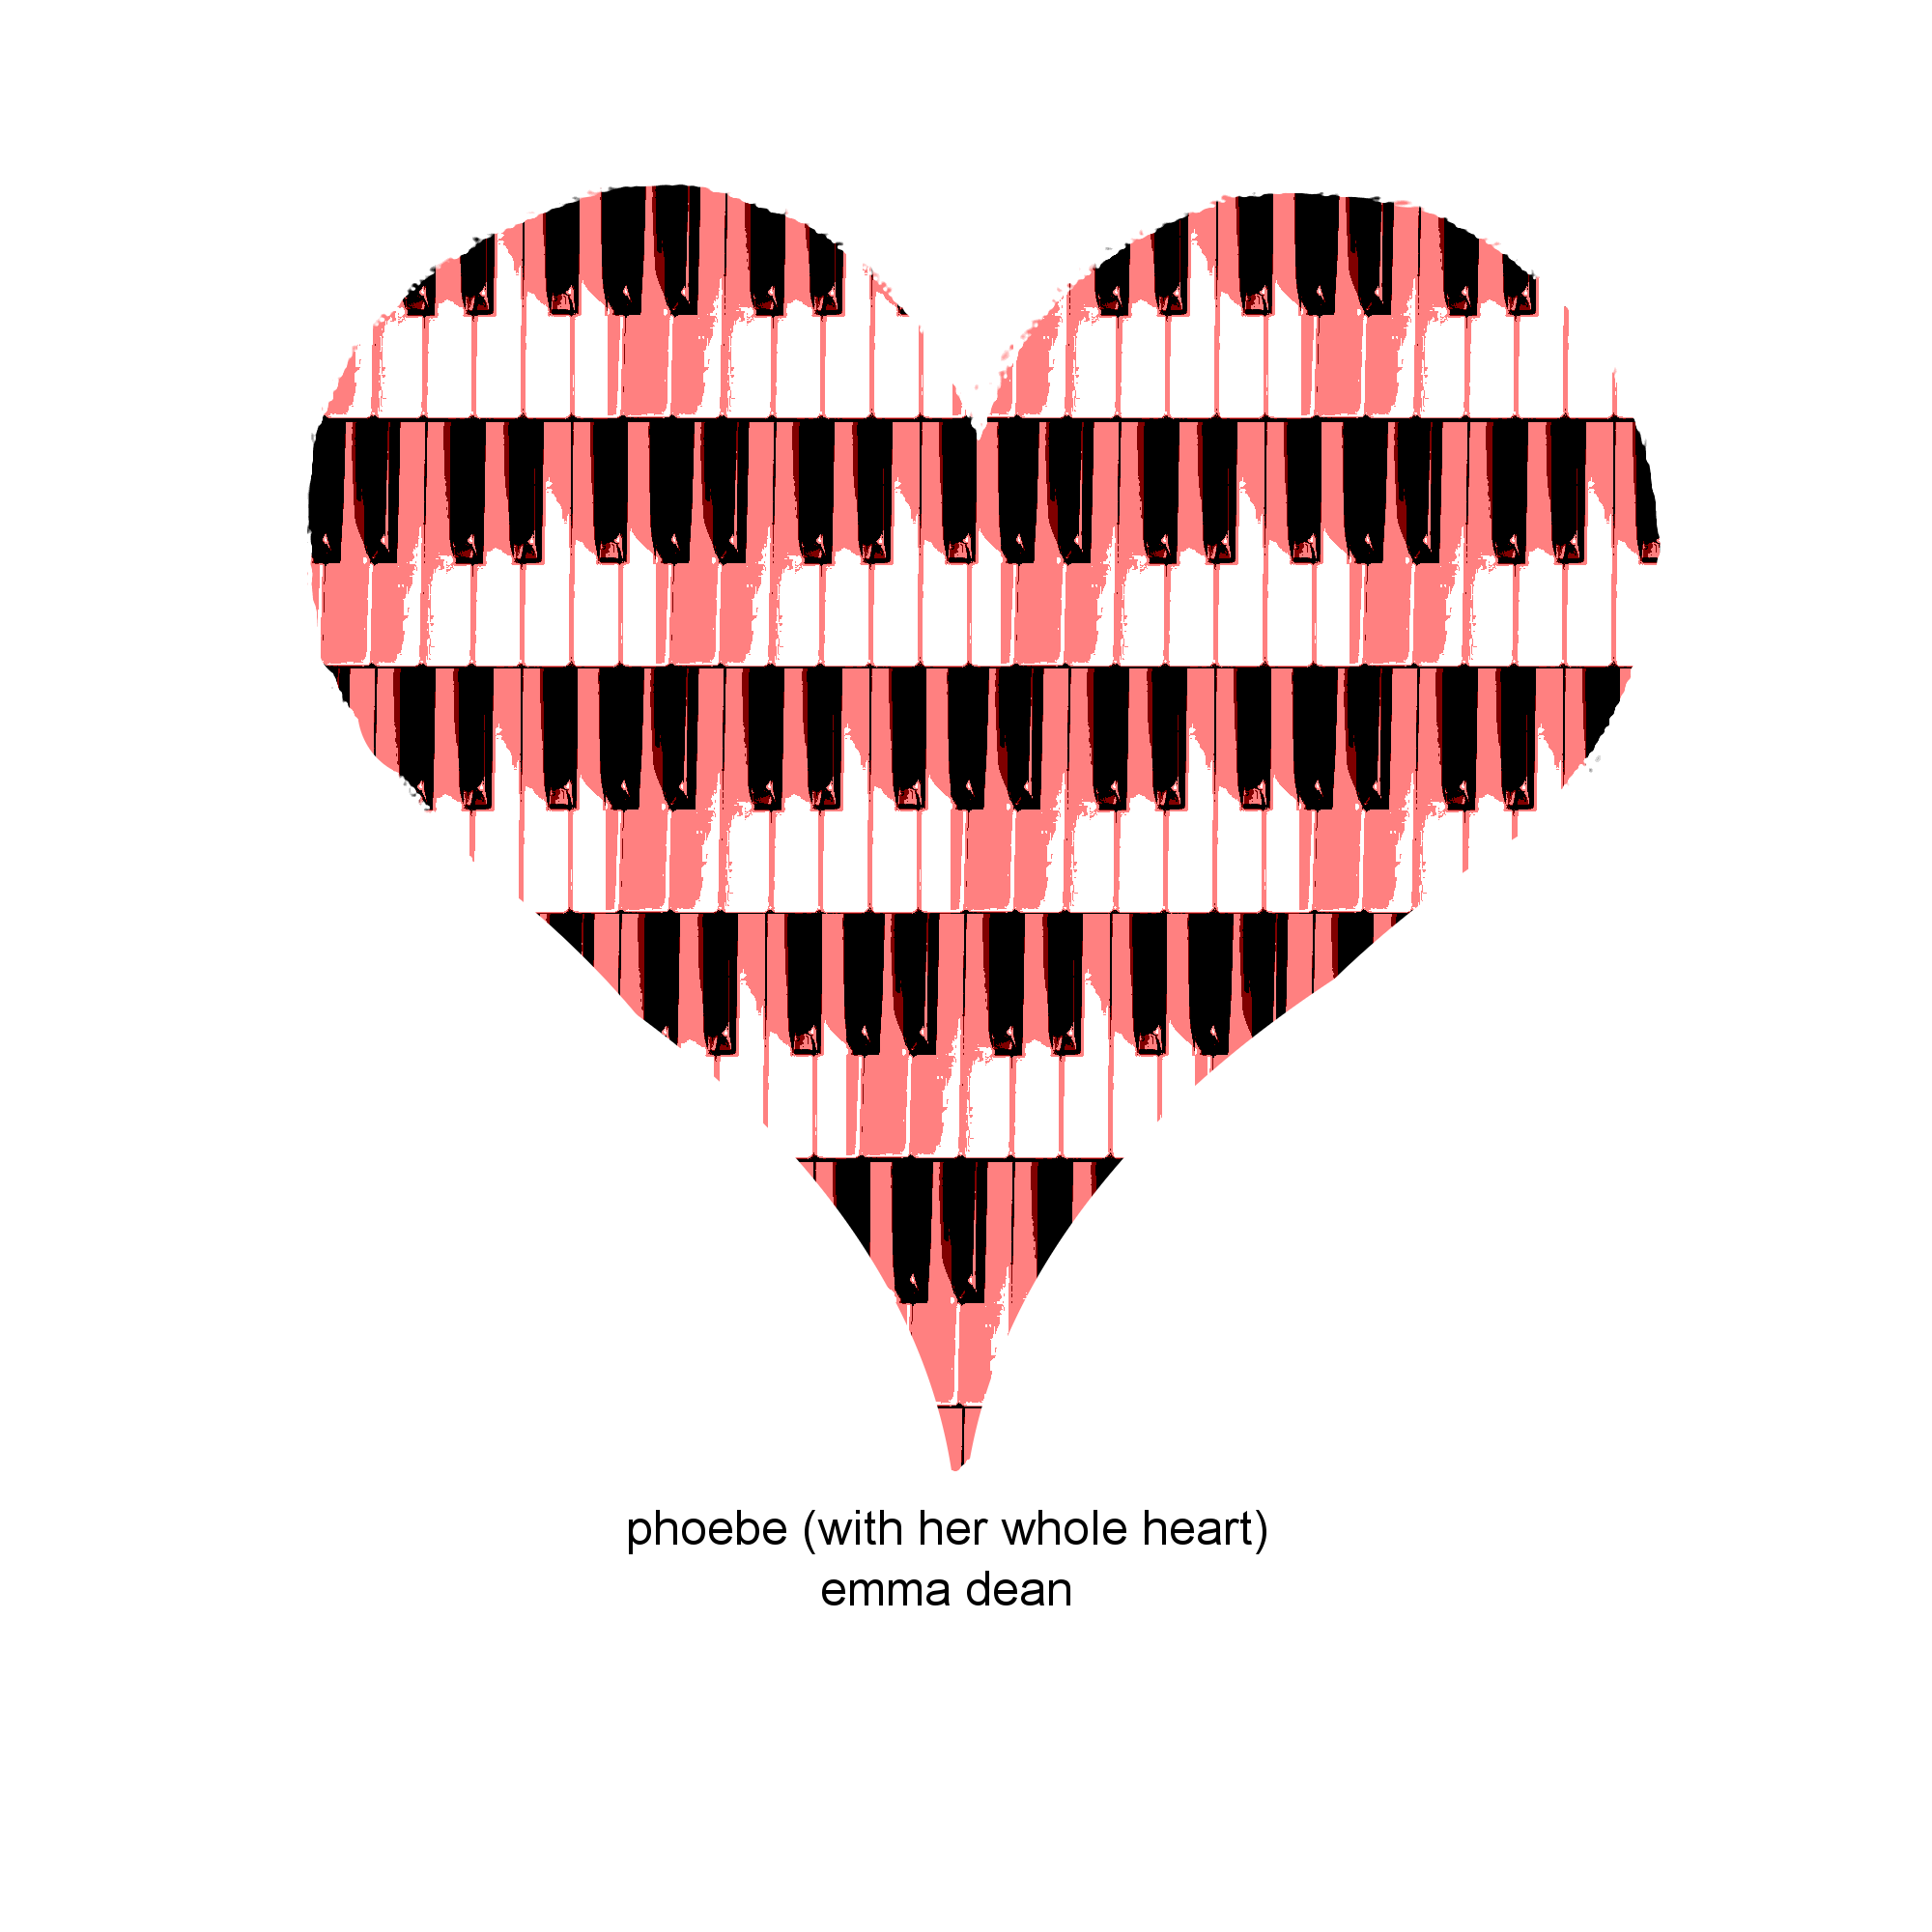 Tshirt graphic for Emma Dean's new song Phoebe (with her Whole Heart) available at http://emmadean.spreadshirt.com and hear the new song at http://emmadean.com x